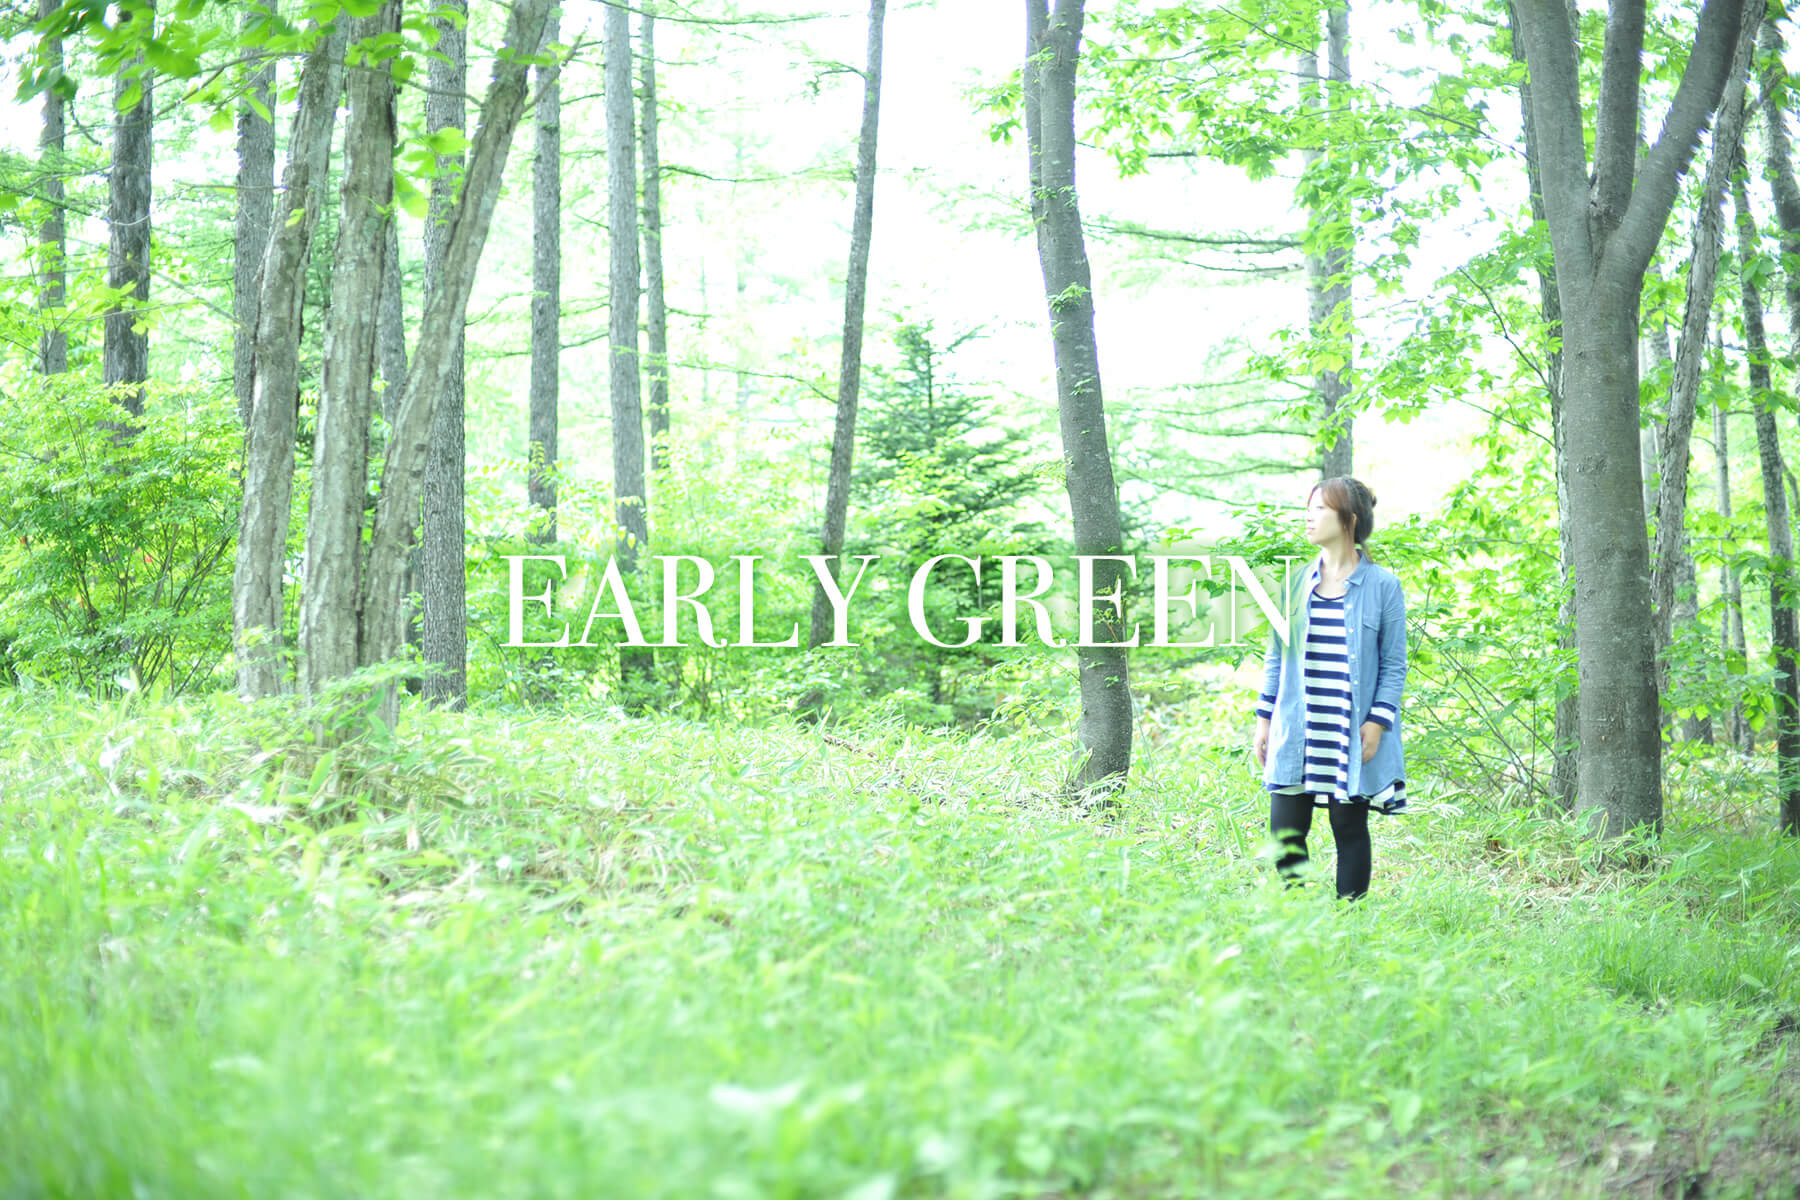 EARLY GREEN